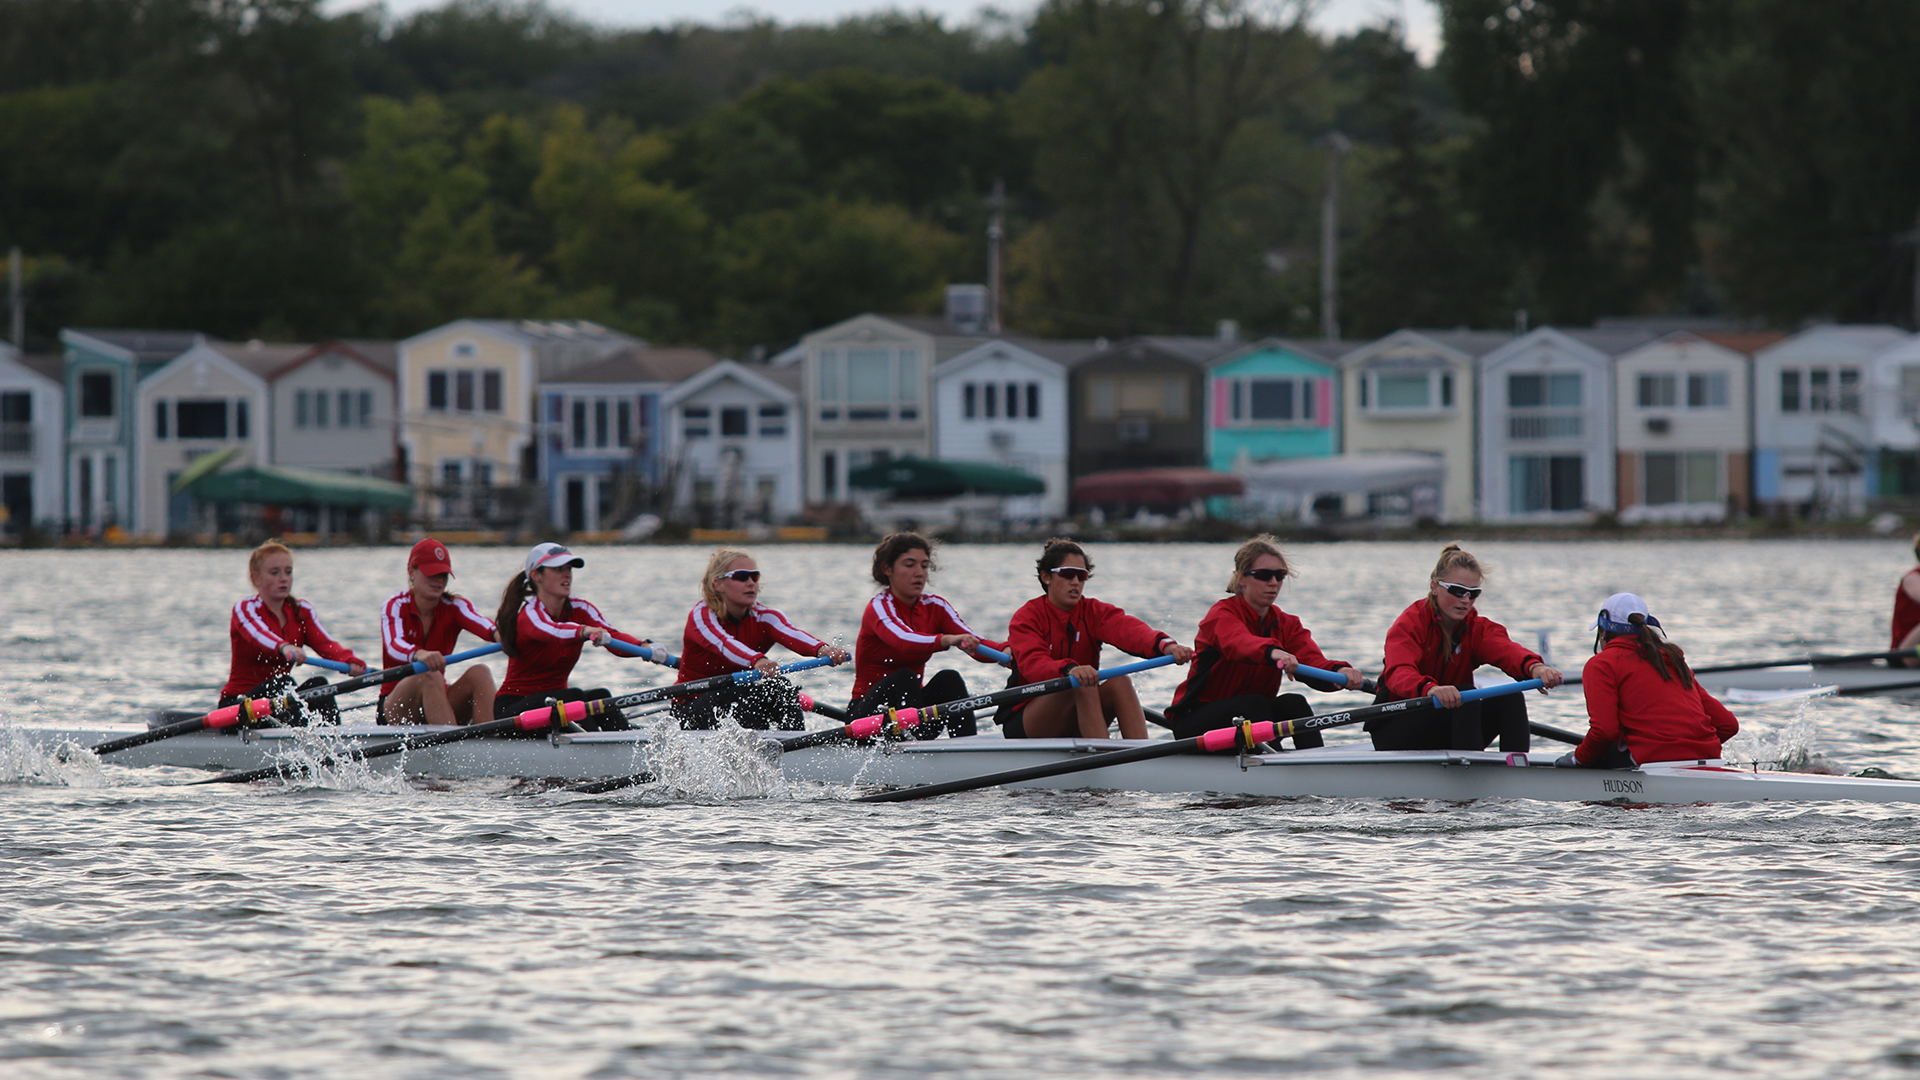 Lightweight eight scrimmage against Indiana and Iowa